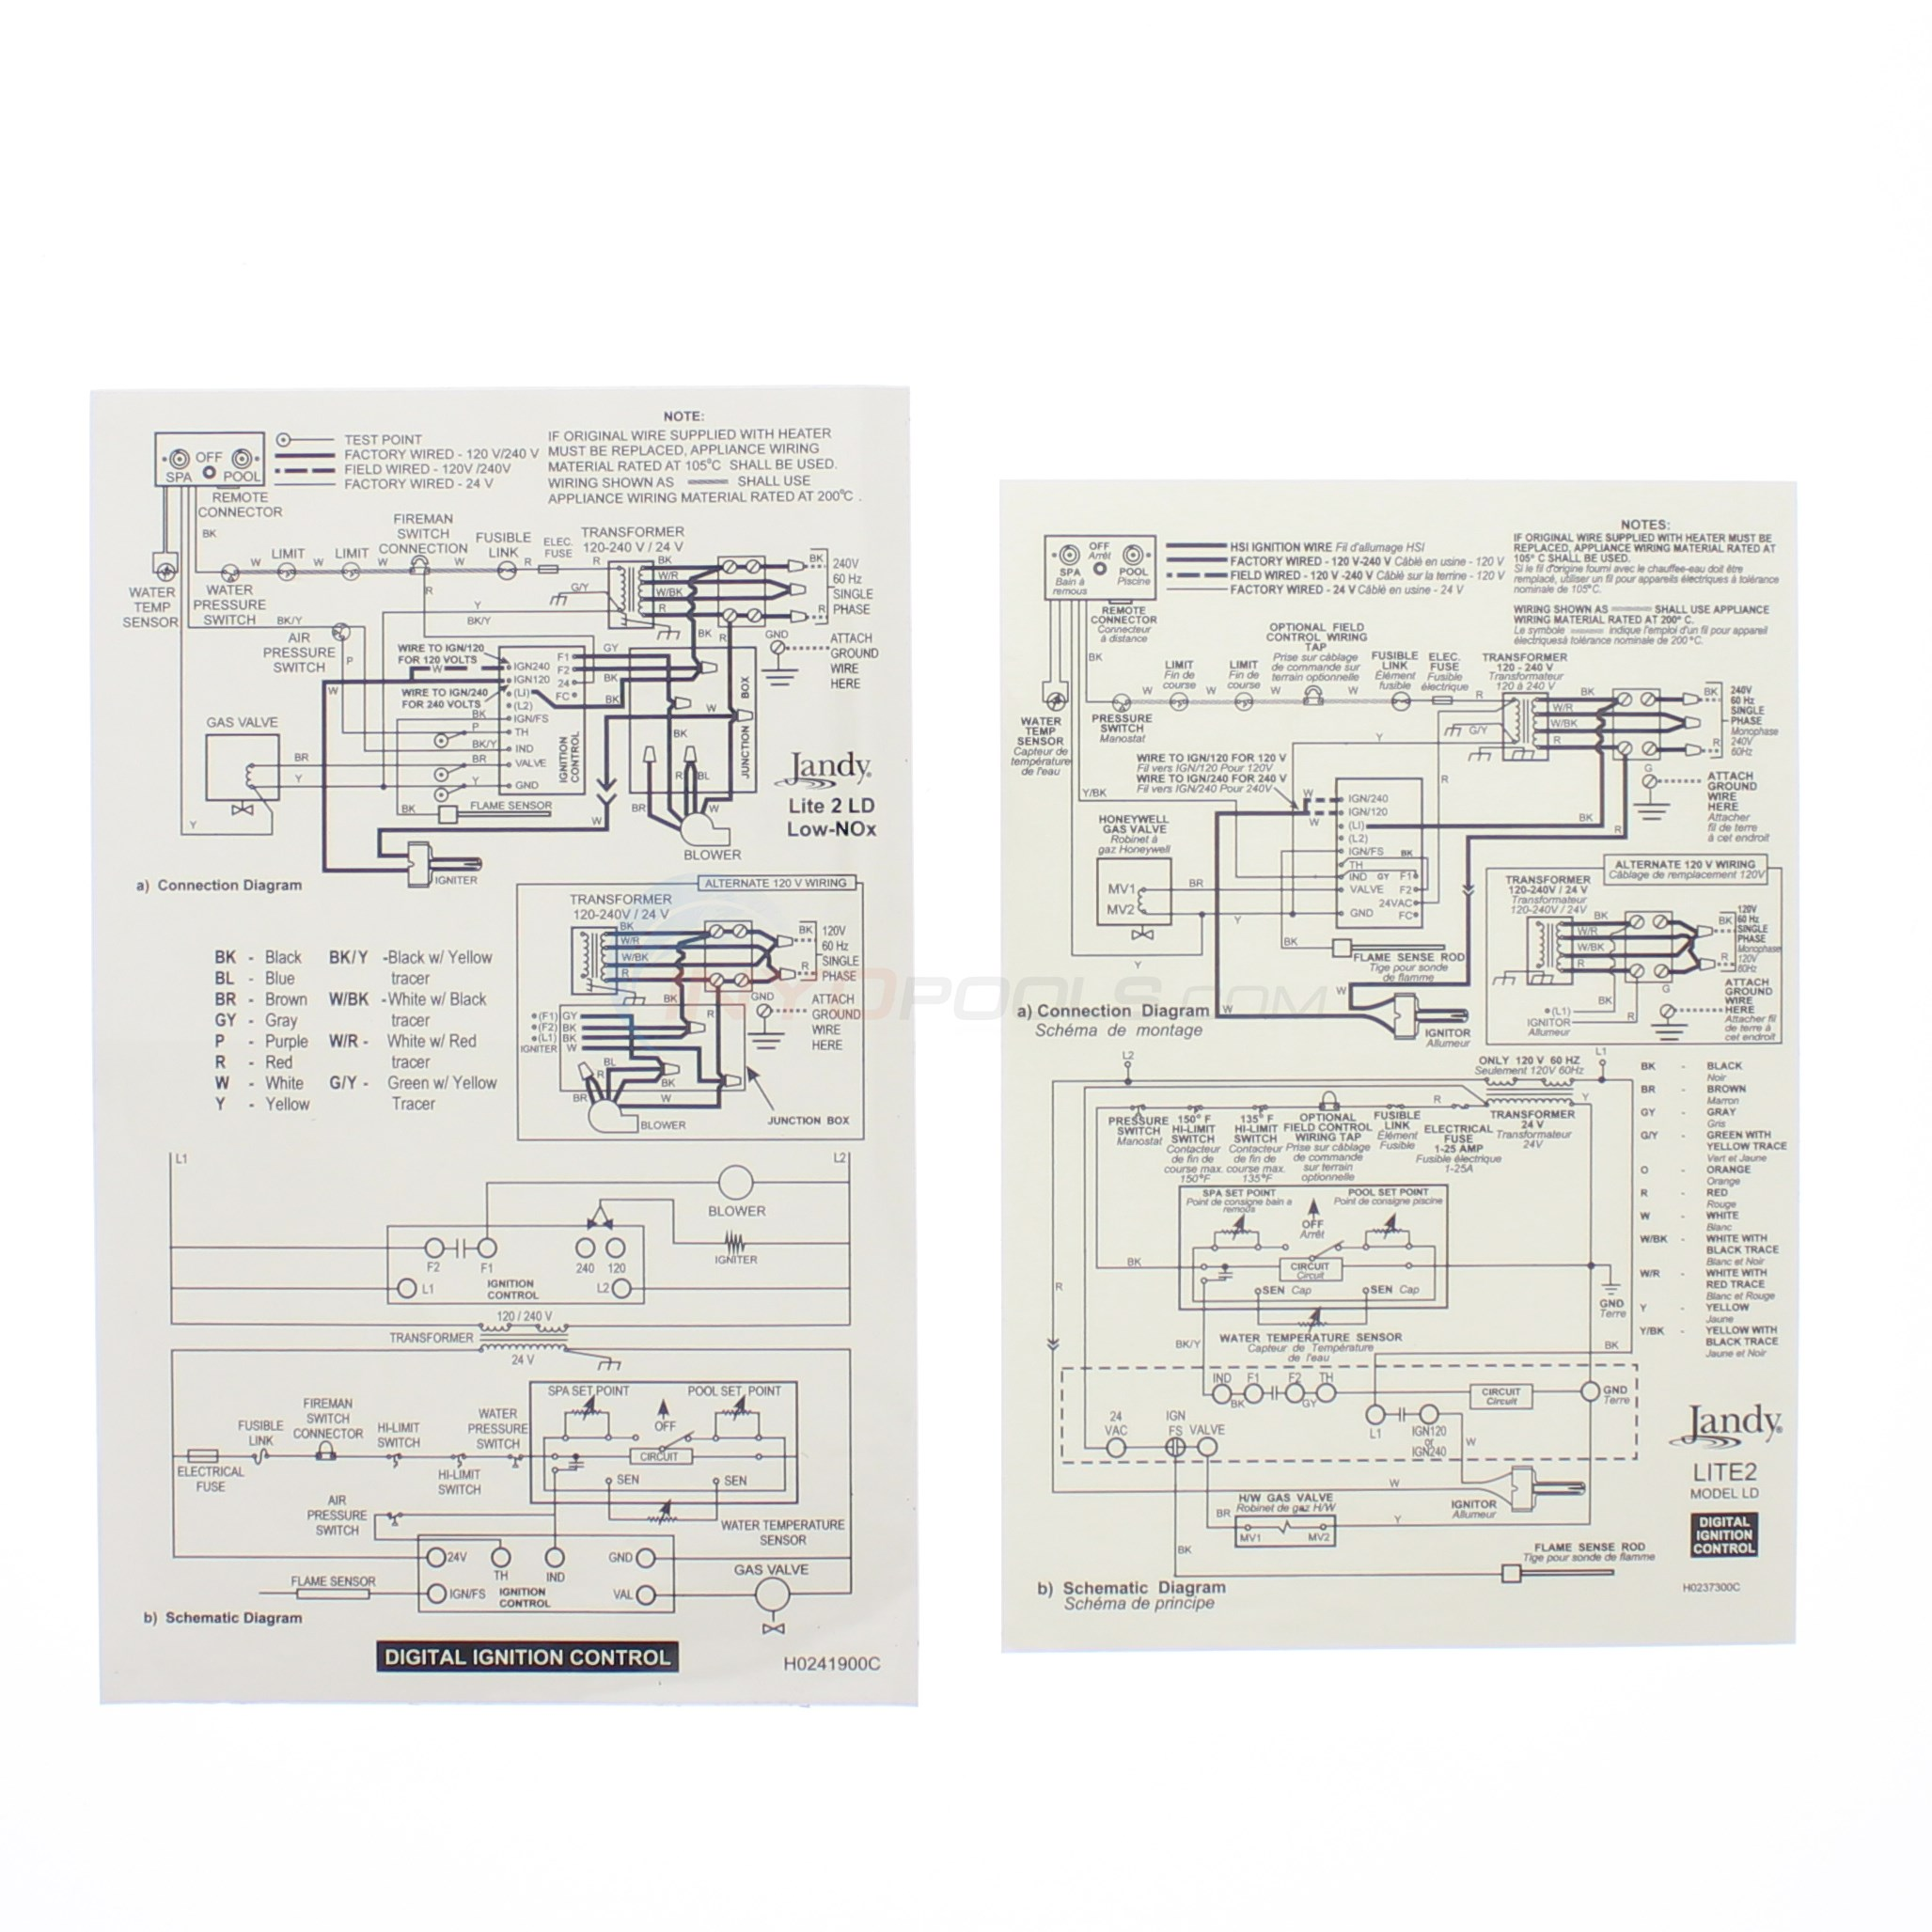 zodiac 6200 0301?format=jpg&scale=both&anchor=middlecenter&autorotate=true&mode=pad&width=650&height=650 zodiac ignition control assembly (r0408100) inyopools com fenwal ignition module wiring diagram at arjmand.co